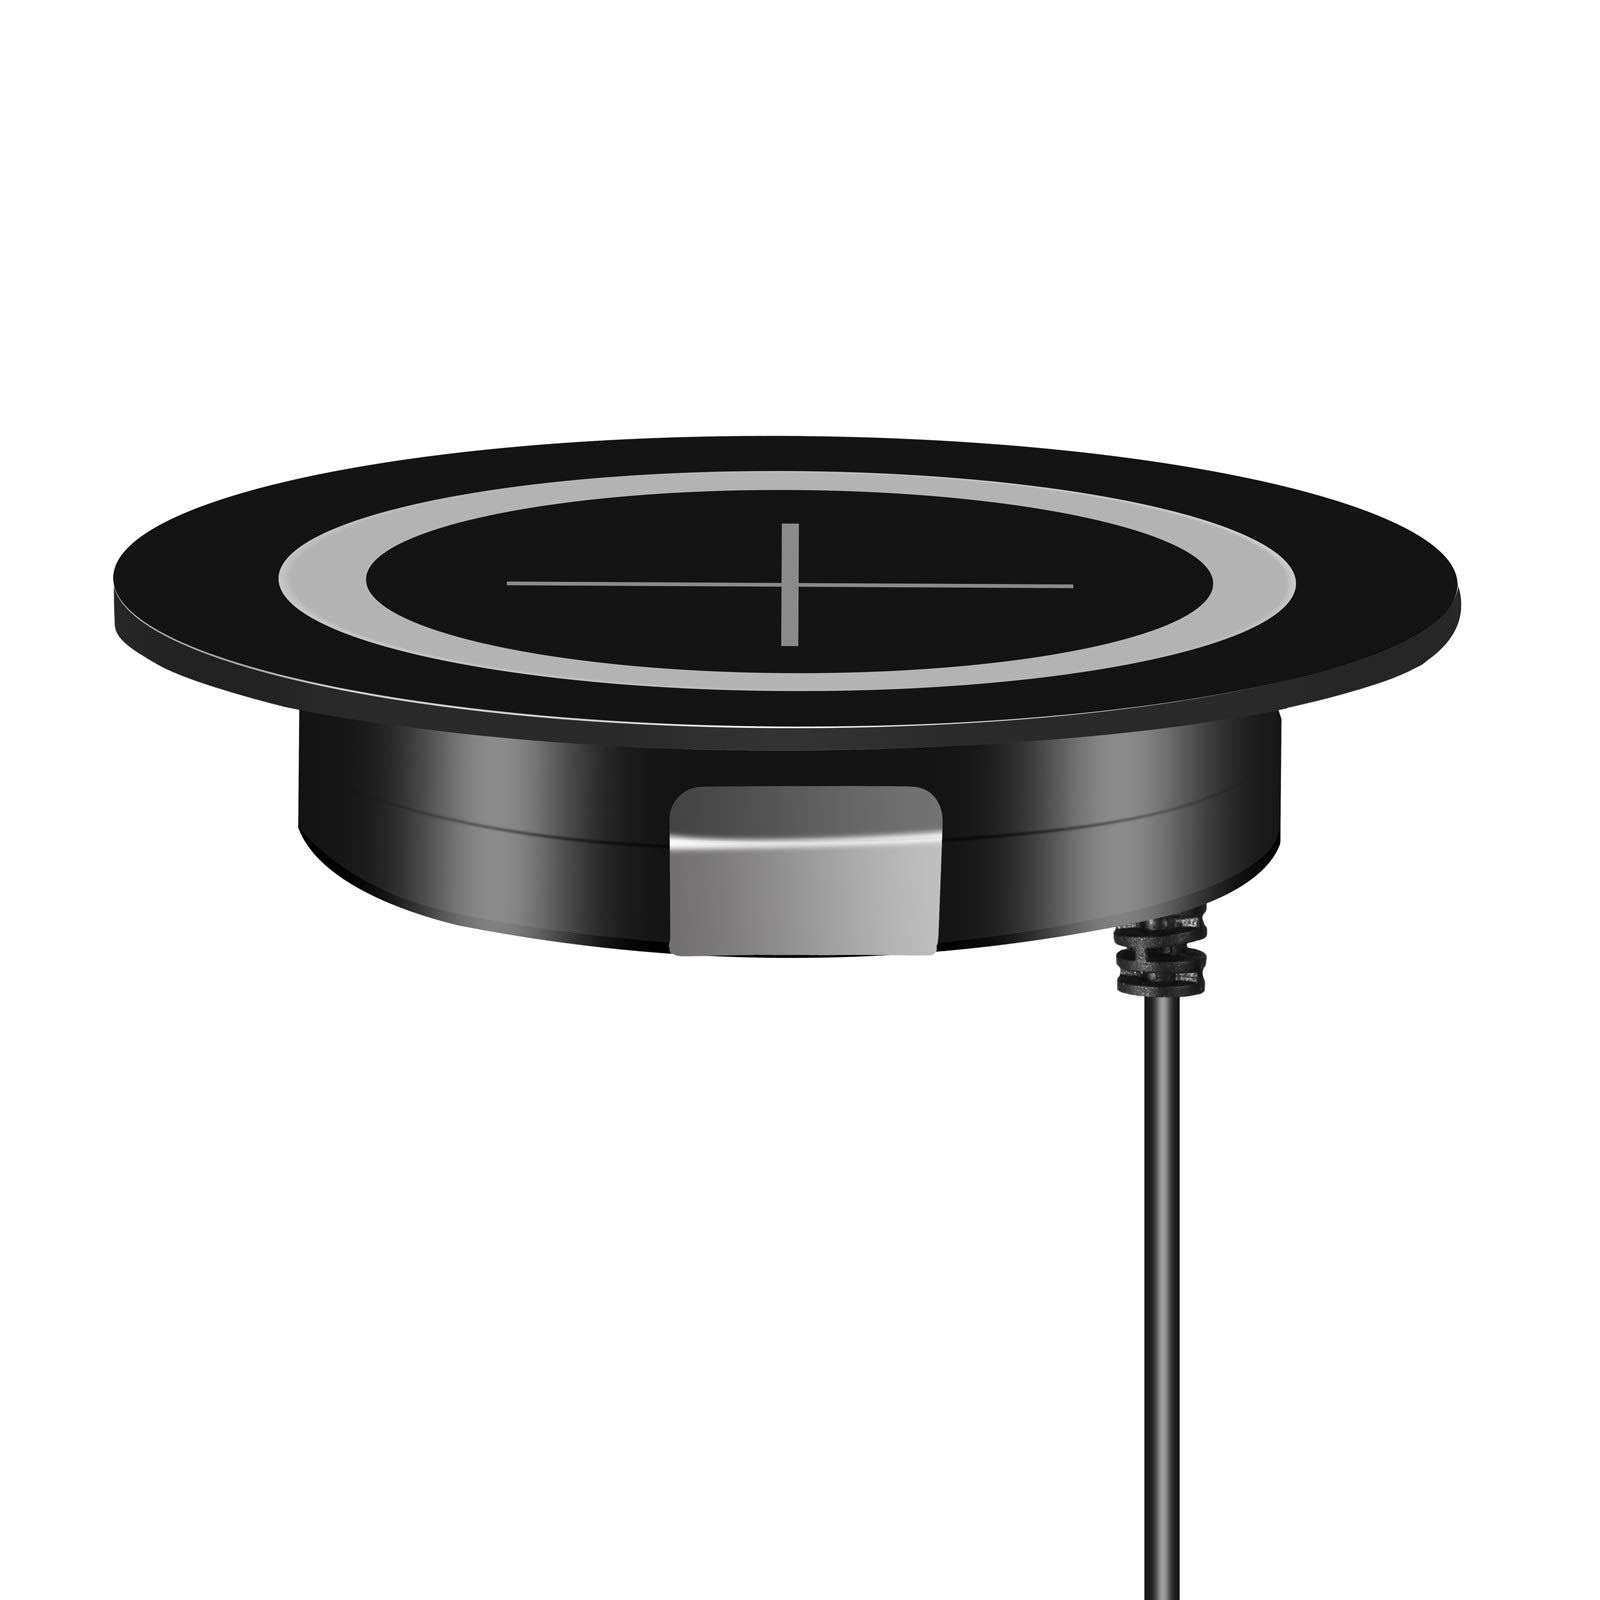 "JE Furniture Grommet Desk Surface Port Hole fast wireless charging,Certified Qi for Furniture Embedded Works which Qi-Enabled Devices 60mm 2.36"" Grommet Hole In Desk wireless surface charger (black)"